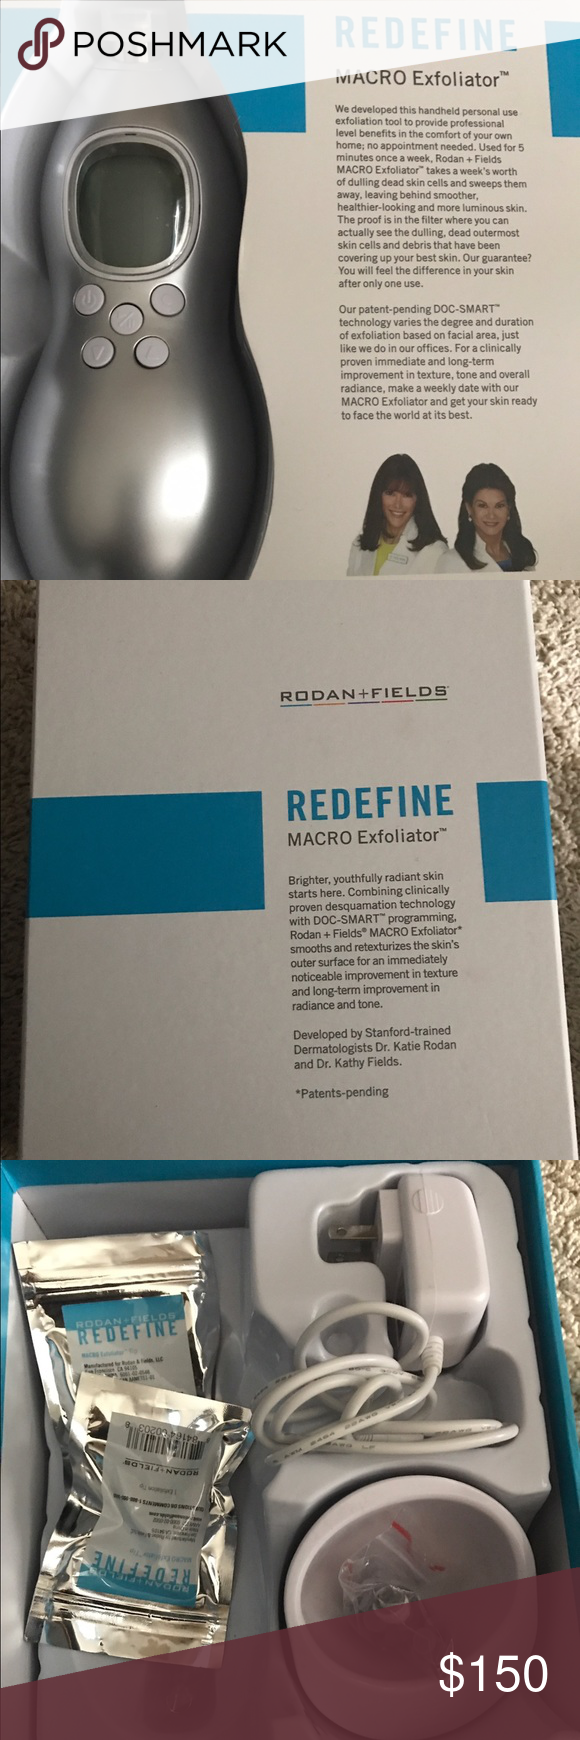 New Rodan + Fields Macro Exfoliator Discontinued Boutique